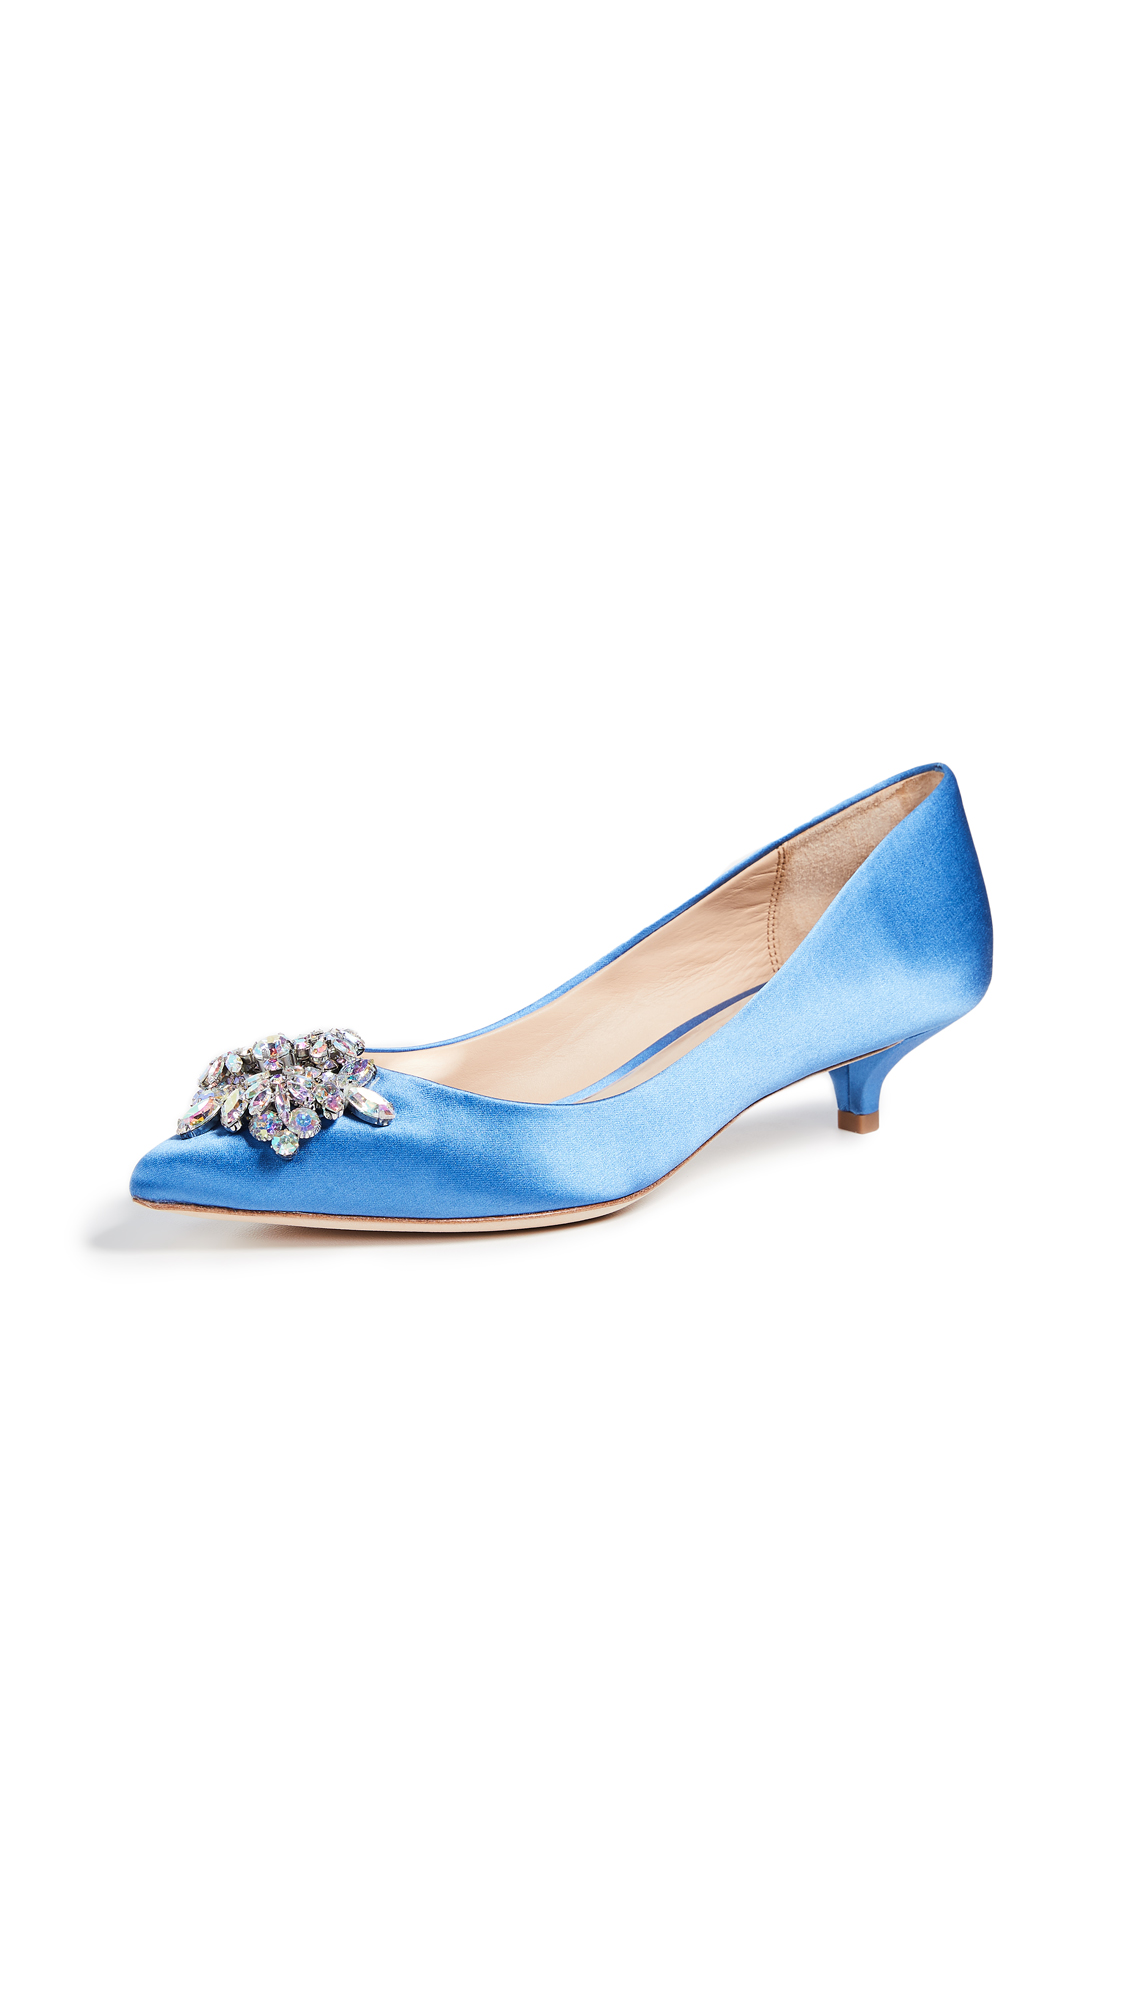 Badgley Mischka Vail Kitten Heel Pumps